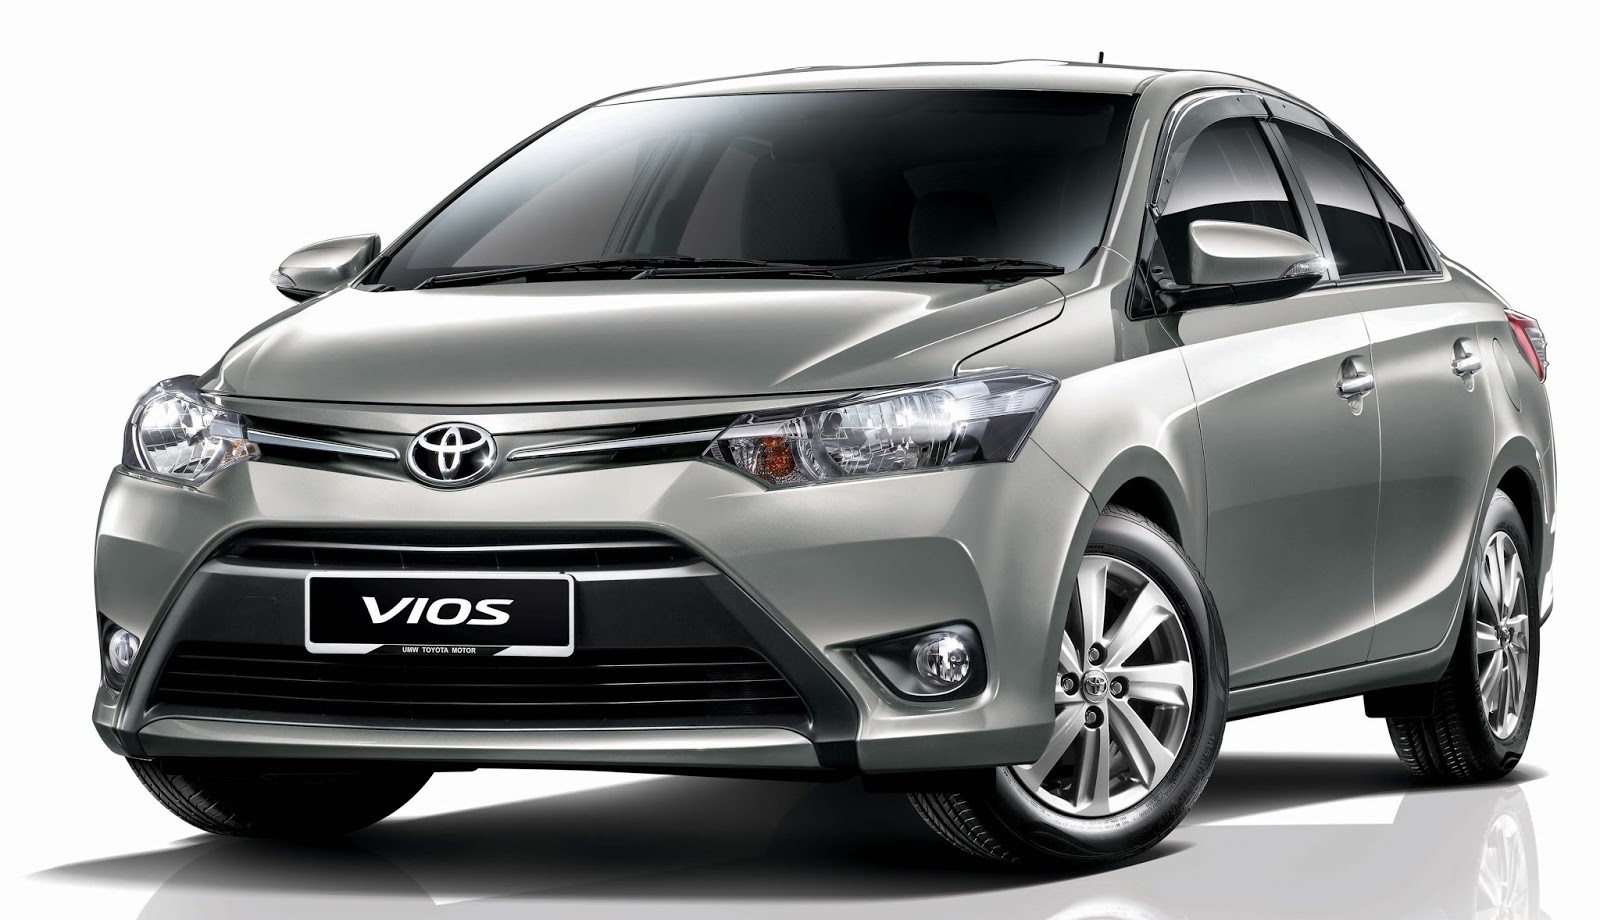 New Upcoming Luxury Sedan Toyota Vios 2016